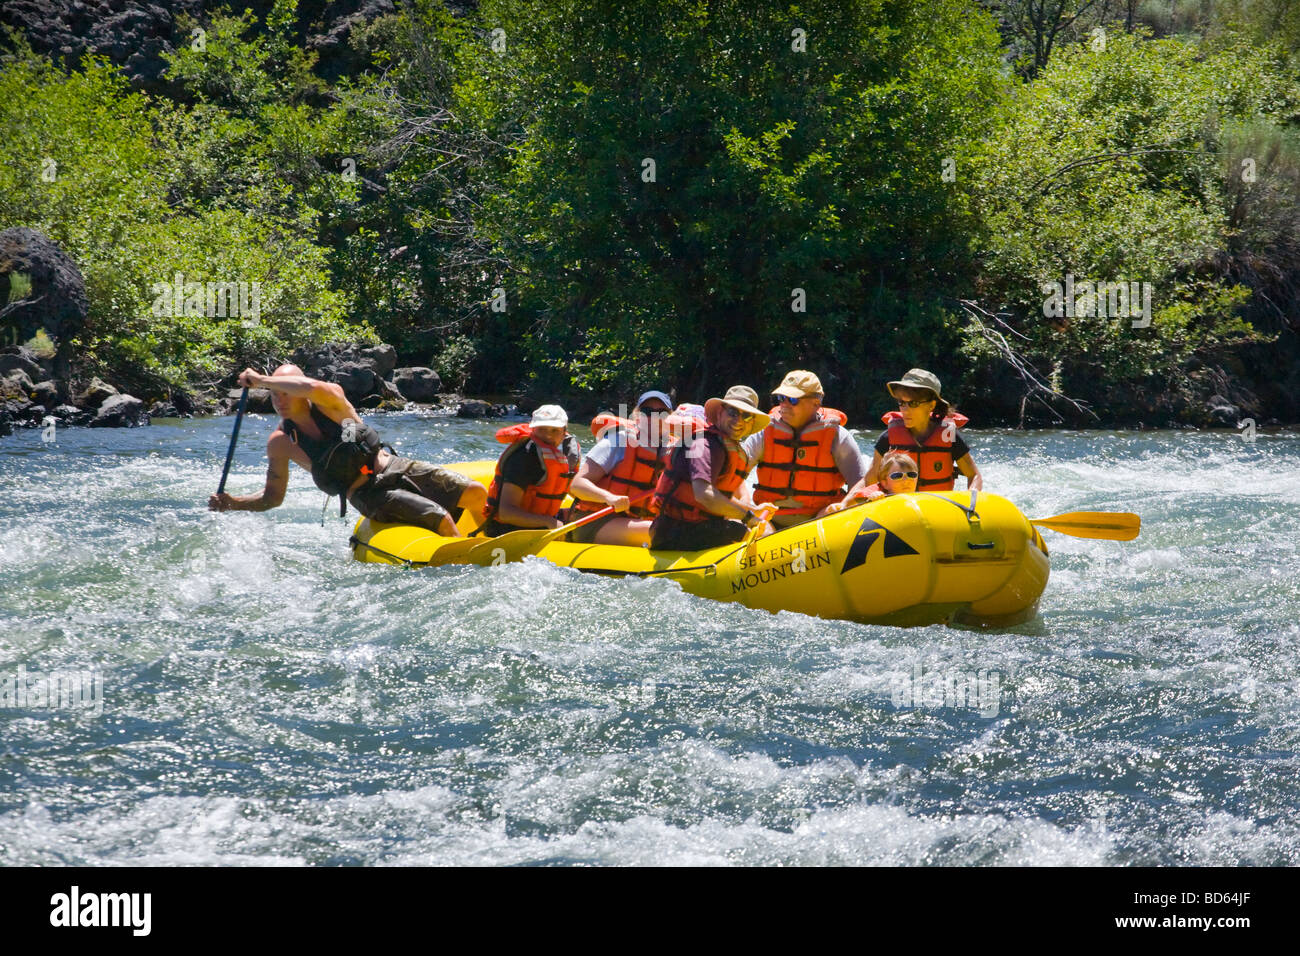 Whitewater rafting rapids on Deschutes River near Bend, Oregon - Stock Image